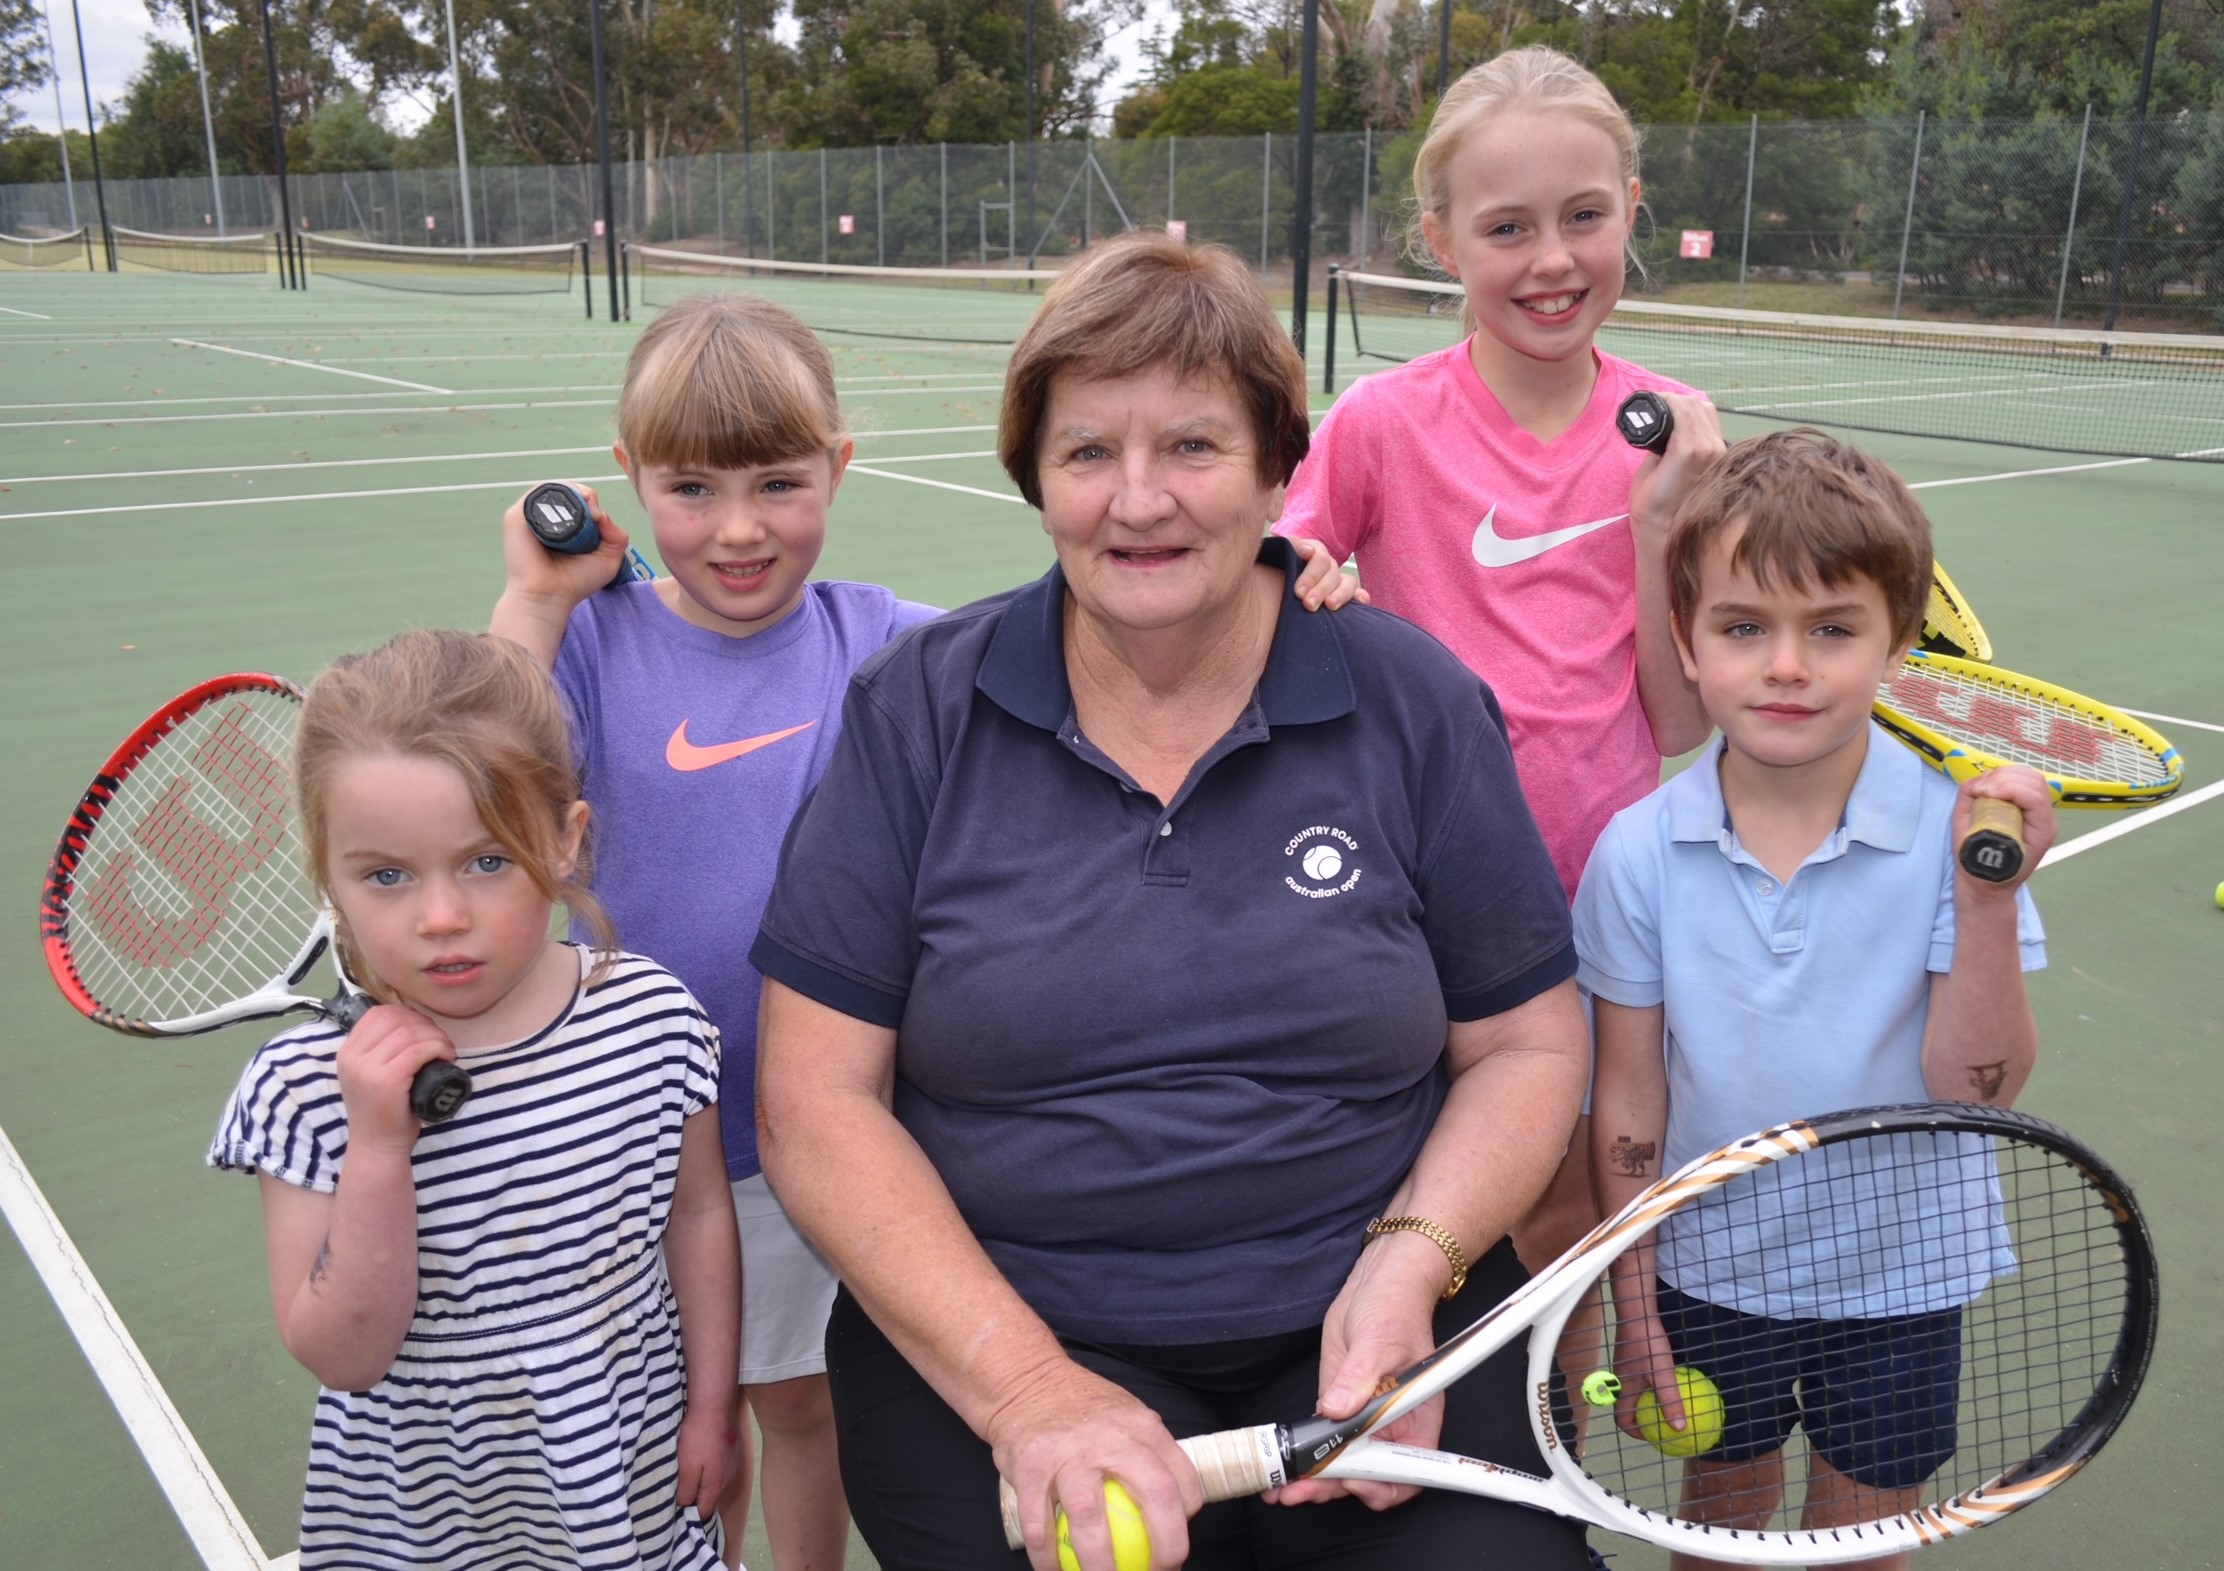 Local tennis coach Jill Atkin is proudly pictured with her grandchildren Winnie, Vivienne, Willow and Sandy.